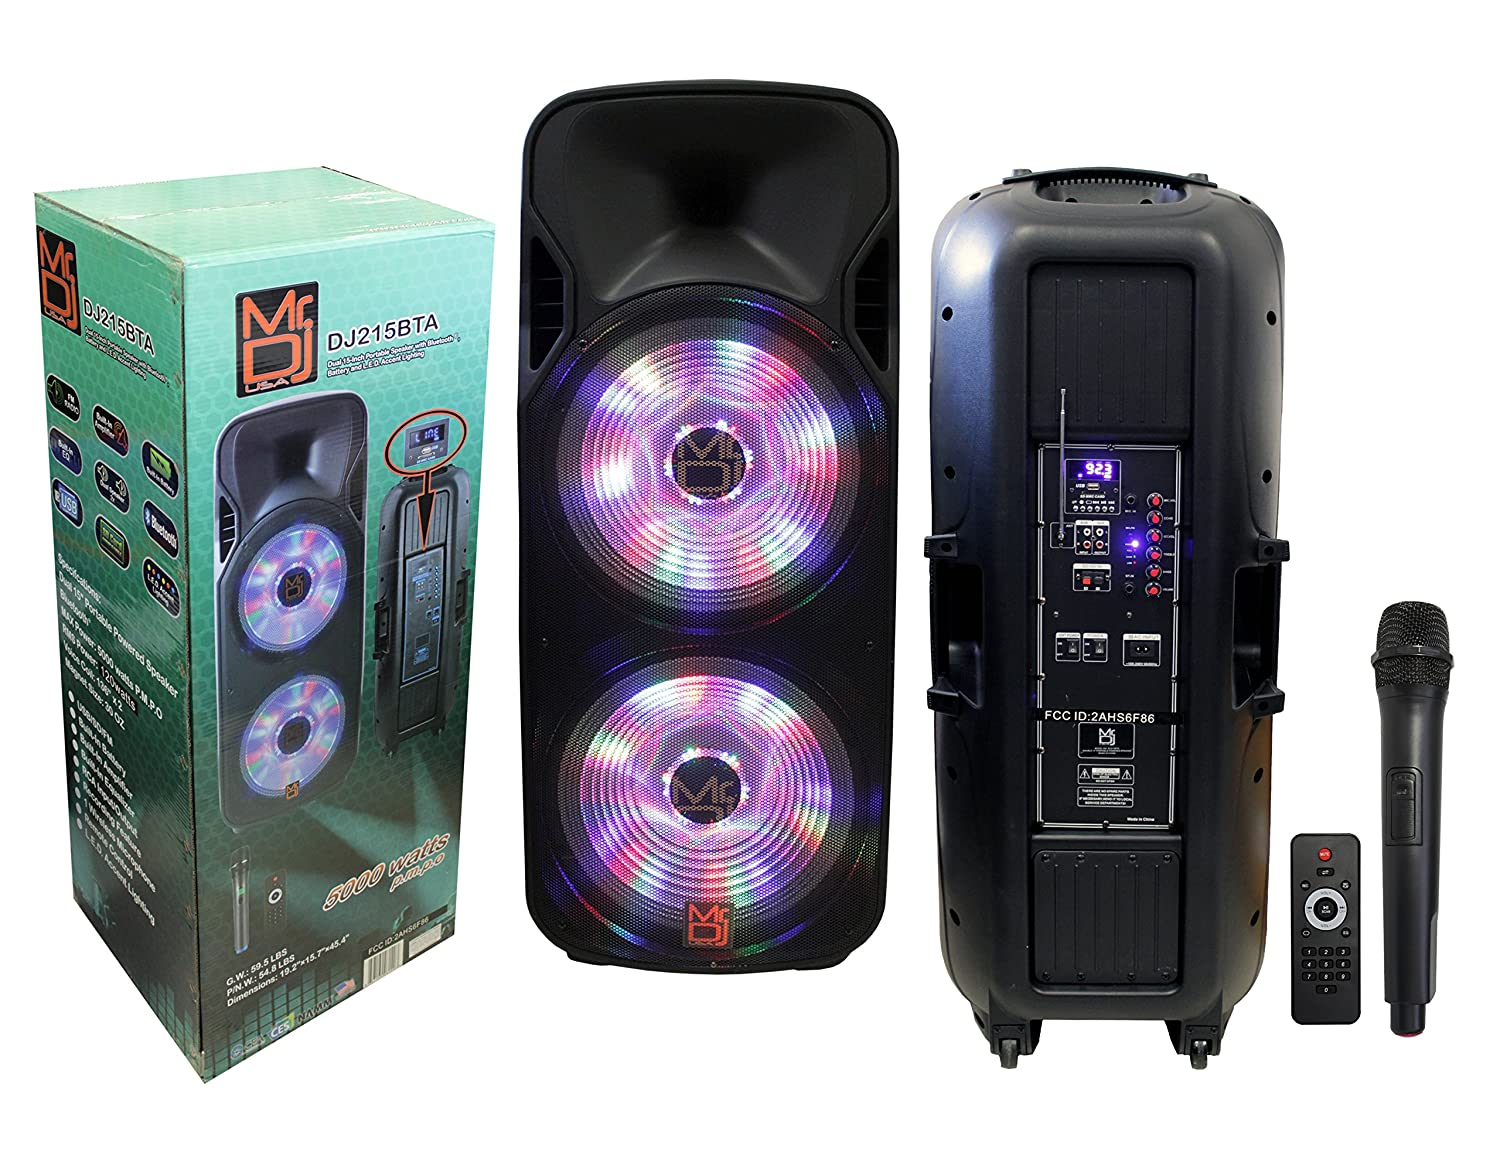 Mr Dj Dj215bta Dual 15 5000w Max Power Speaker With Amplifier Using Tda2009a 12 Watt 15x2 Audio Built In Bluetooth Battery 1 Lcd Mp3 Usb Sd Slot Musical Instruments